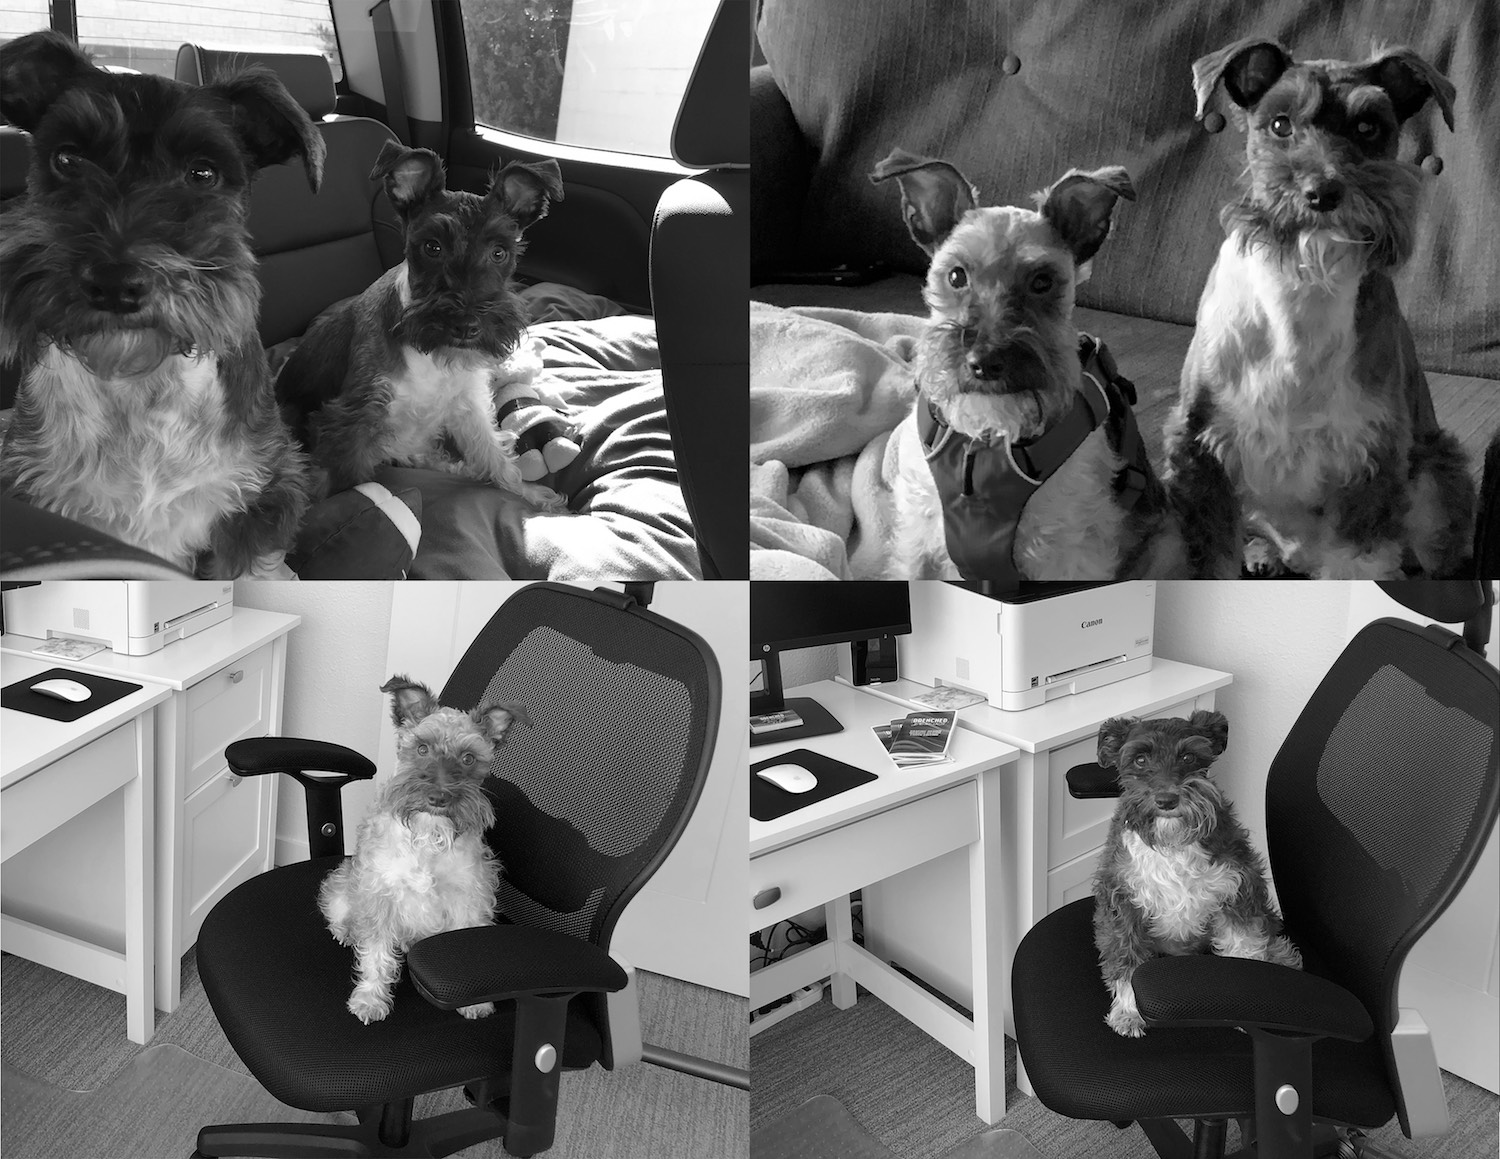 Design assistants and travel partners - Franklin and Otis